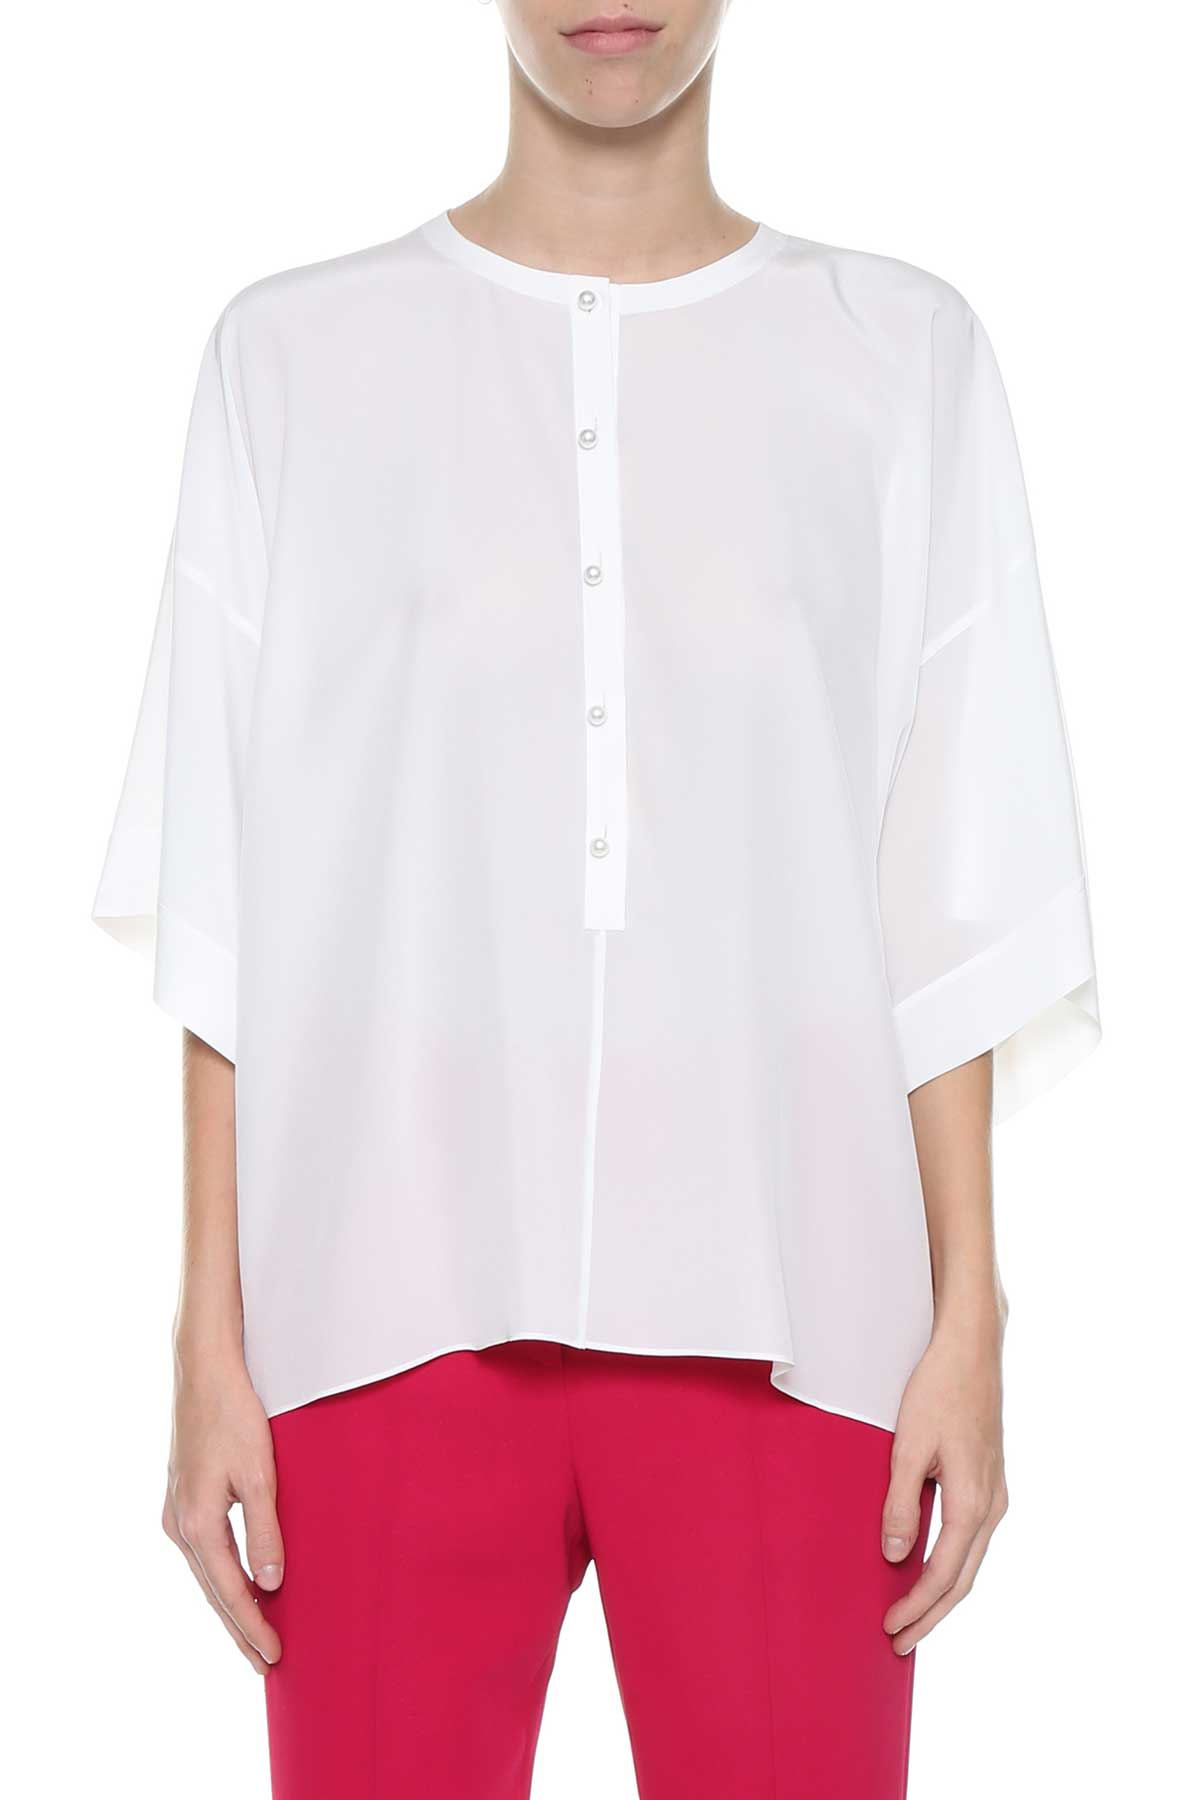 Givenchy Givenchy Top With Pearl Buttons